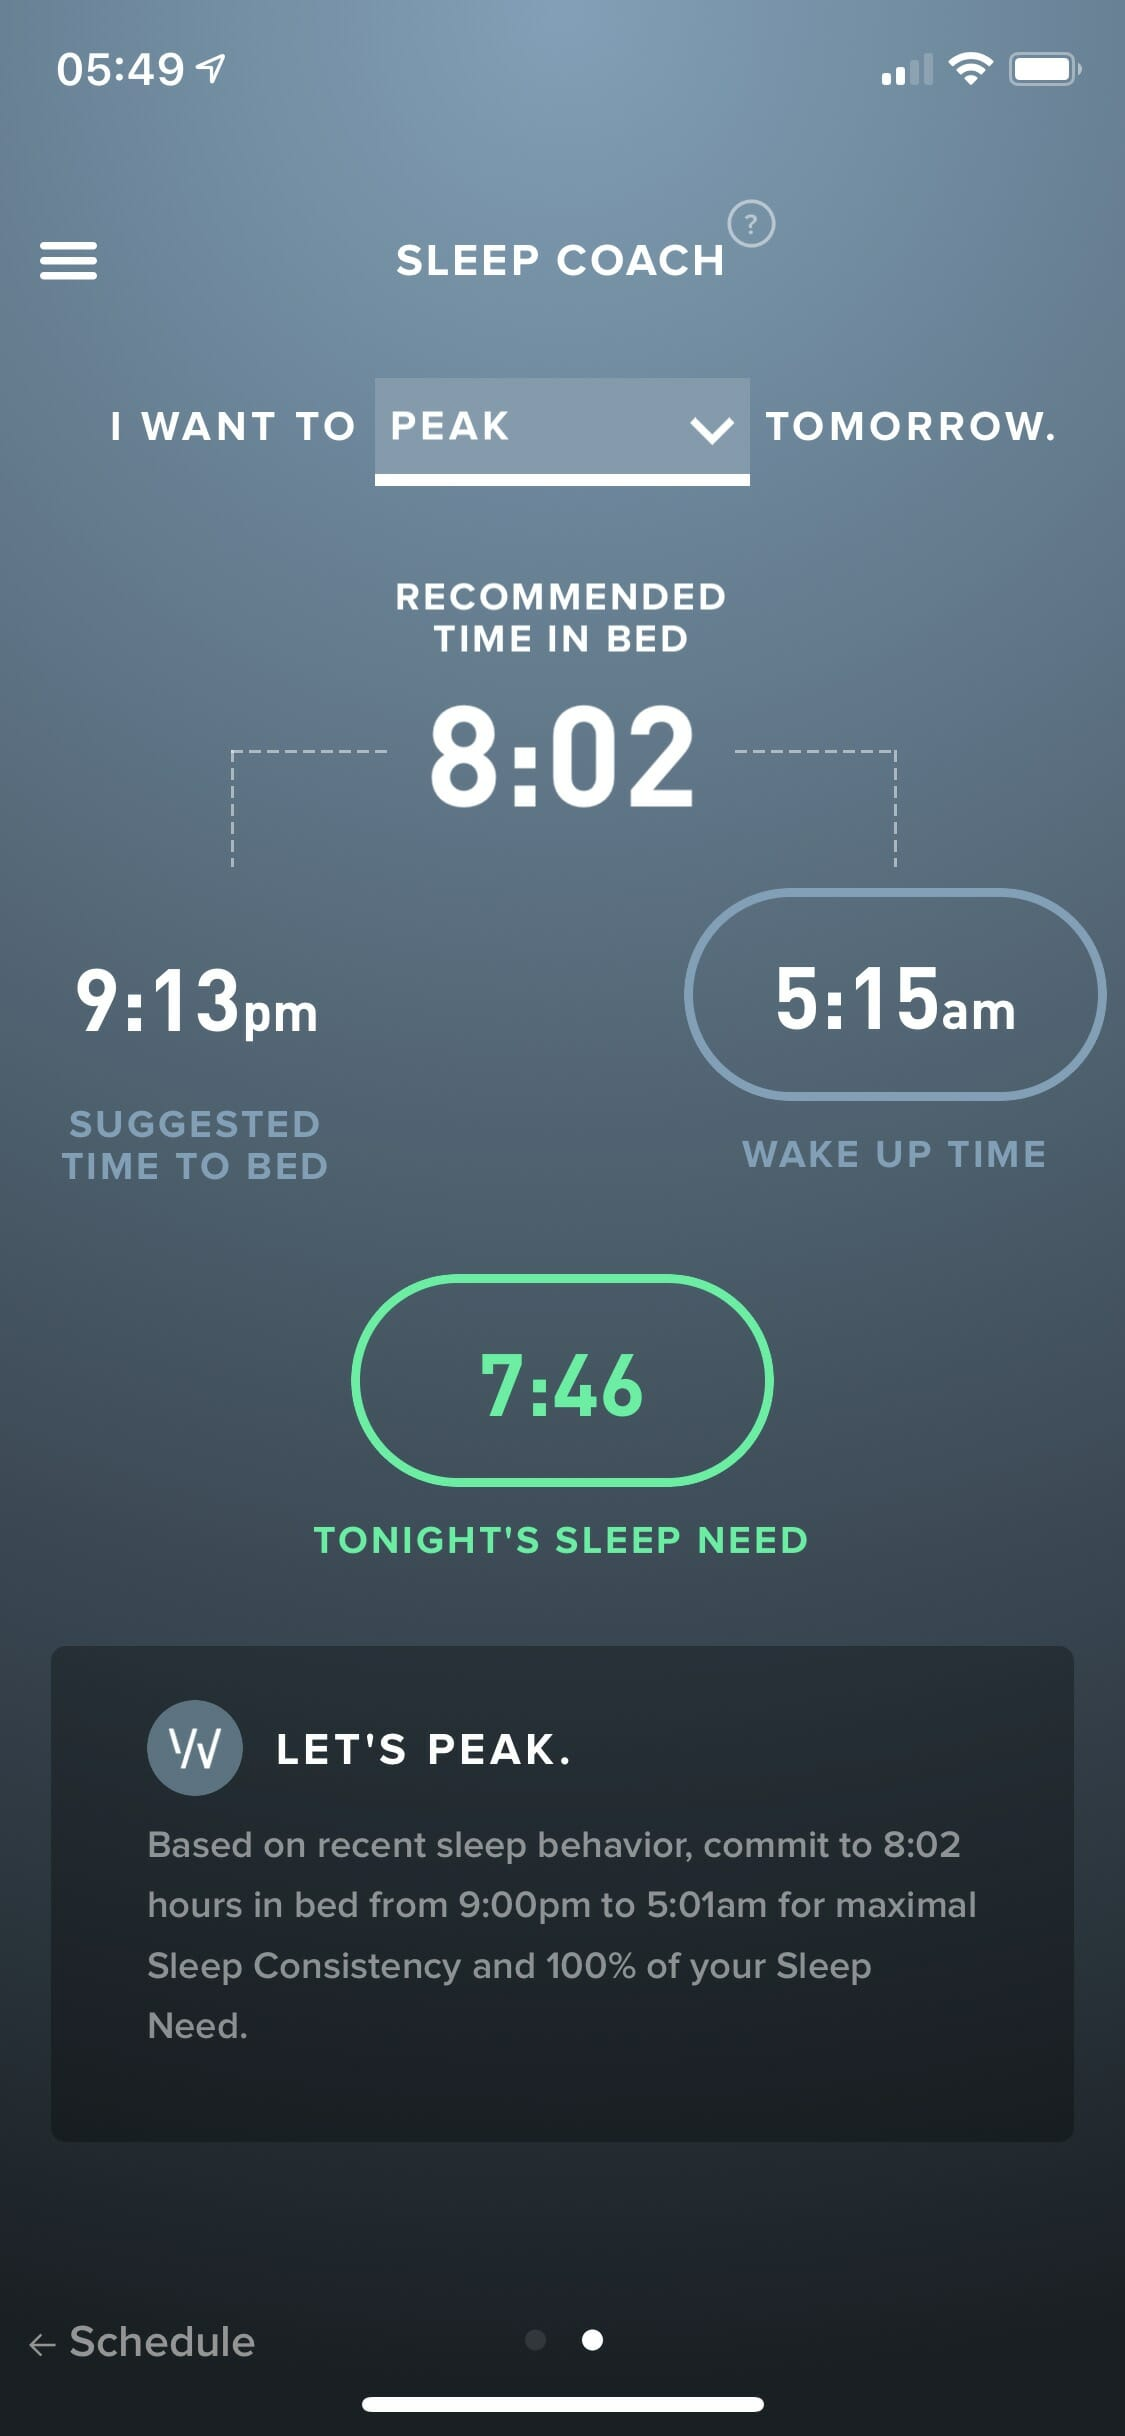 WHOOP App Sleep Coach